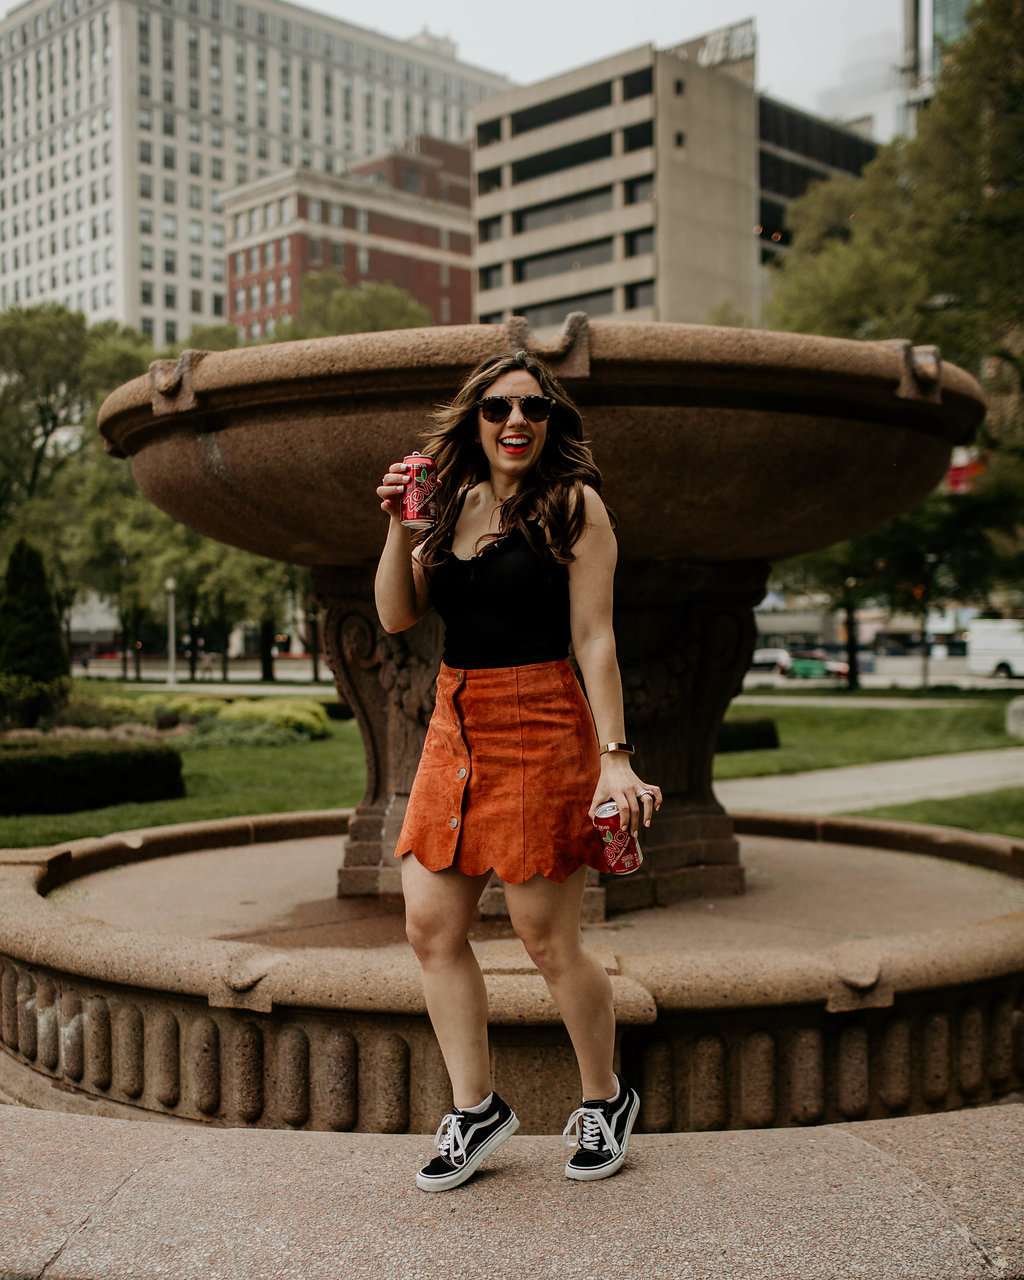 Healthier Drinks & On Mondays We Link Up (#69) featured by popular Chicago lifestyle blogger, Glass of Glam